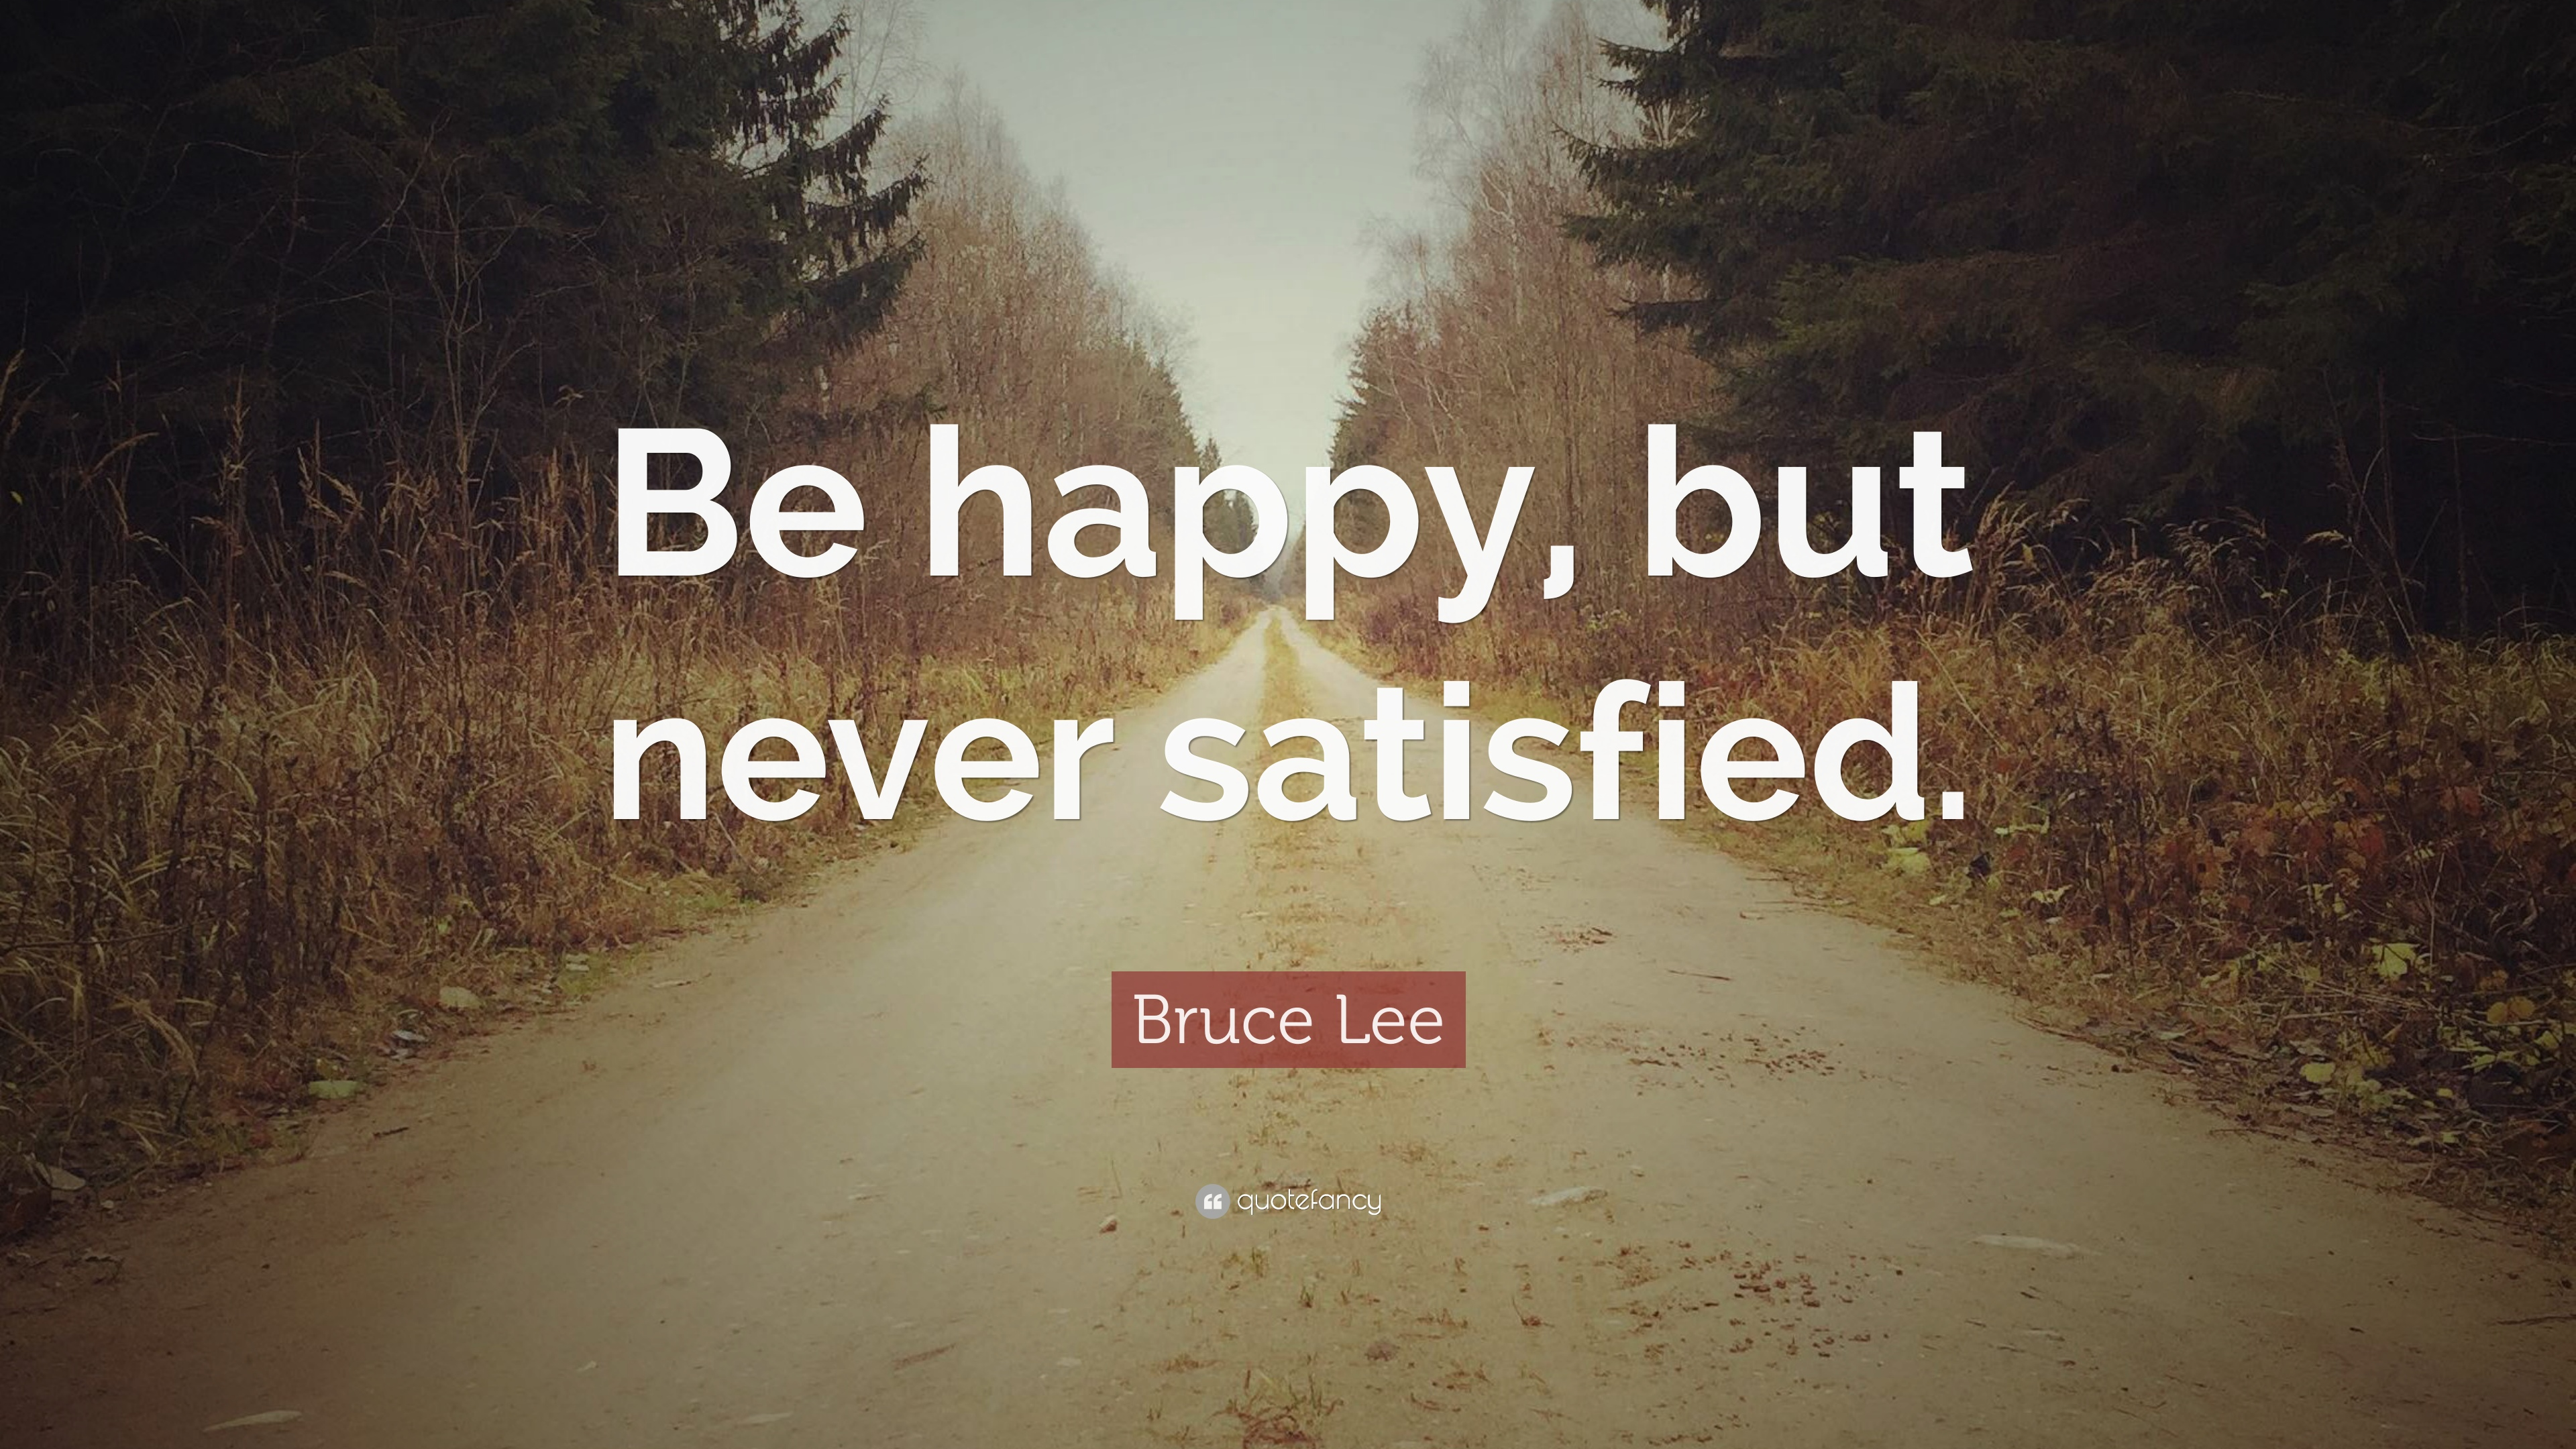 Bruce Lee Quote: Be happy, but never satisfied.